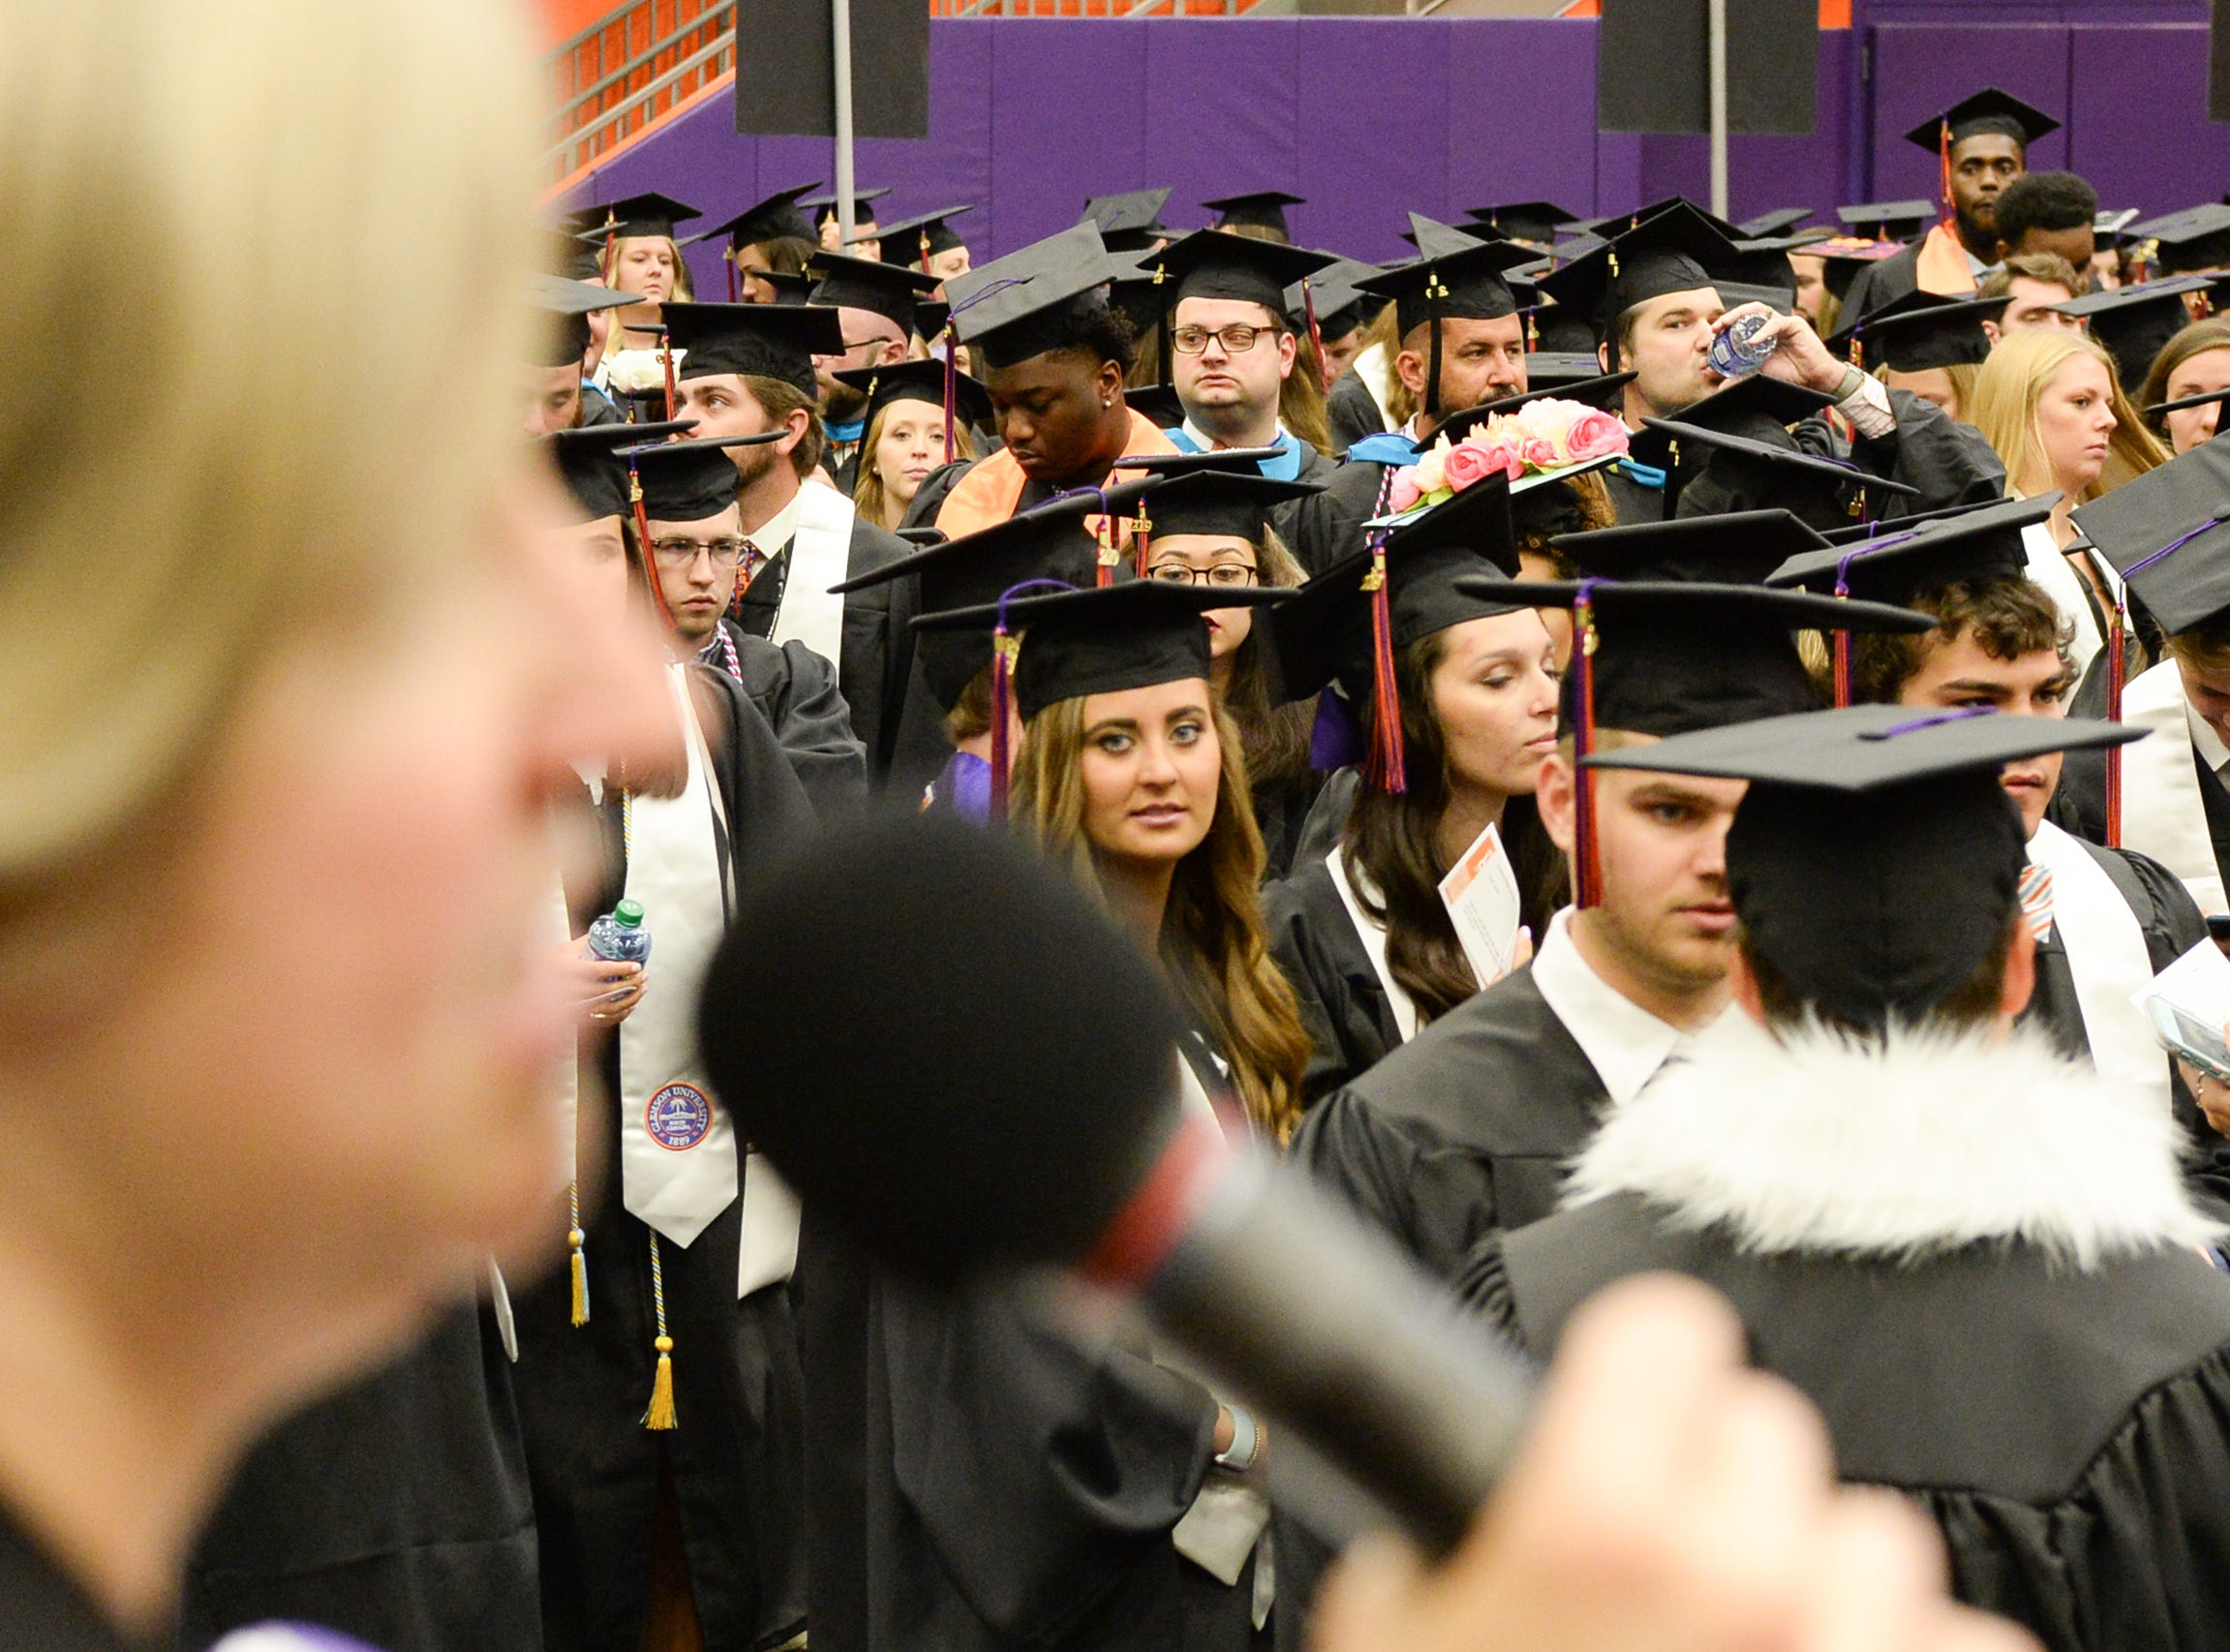 Graduates look over toward Alanna Landreth, Assistant Director of Event Services, making an announcement before Clemson University commencement ceremonies in Littlejohn Coliseum in Clemson Friday, May 10, 2019.